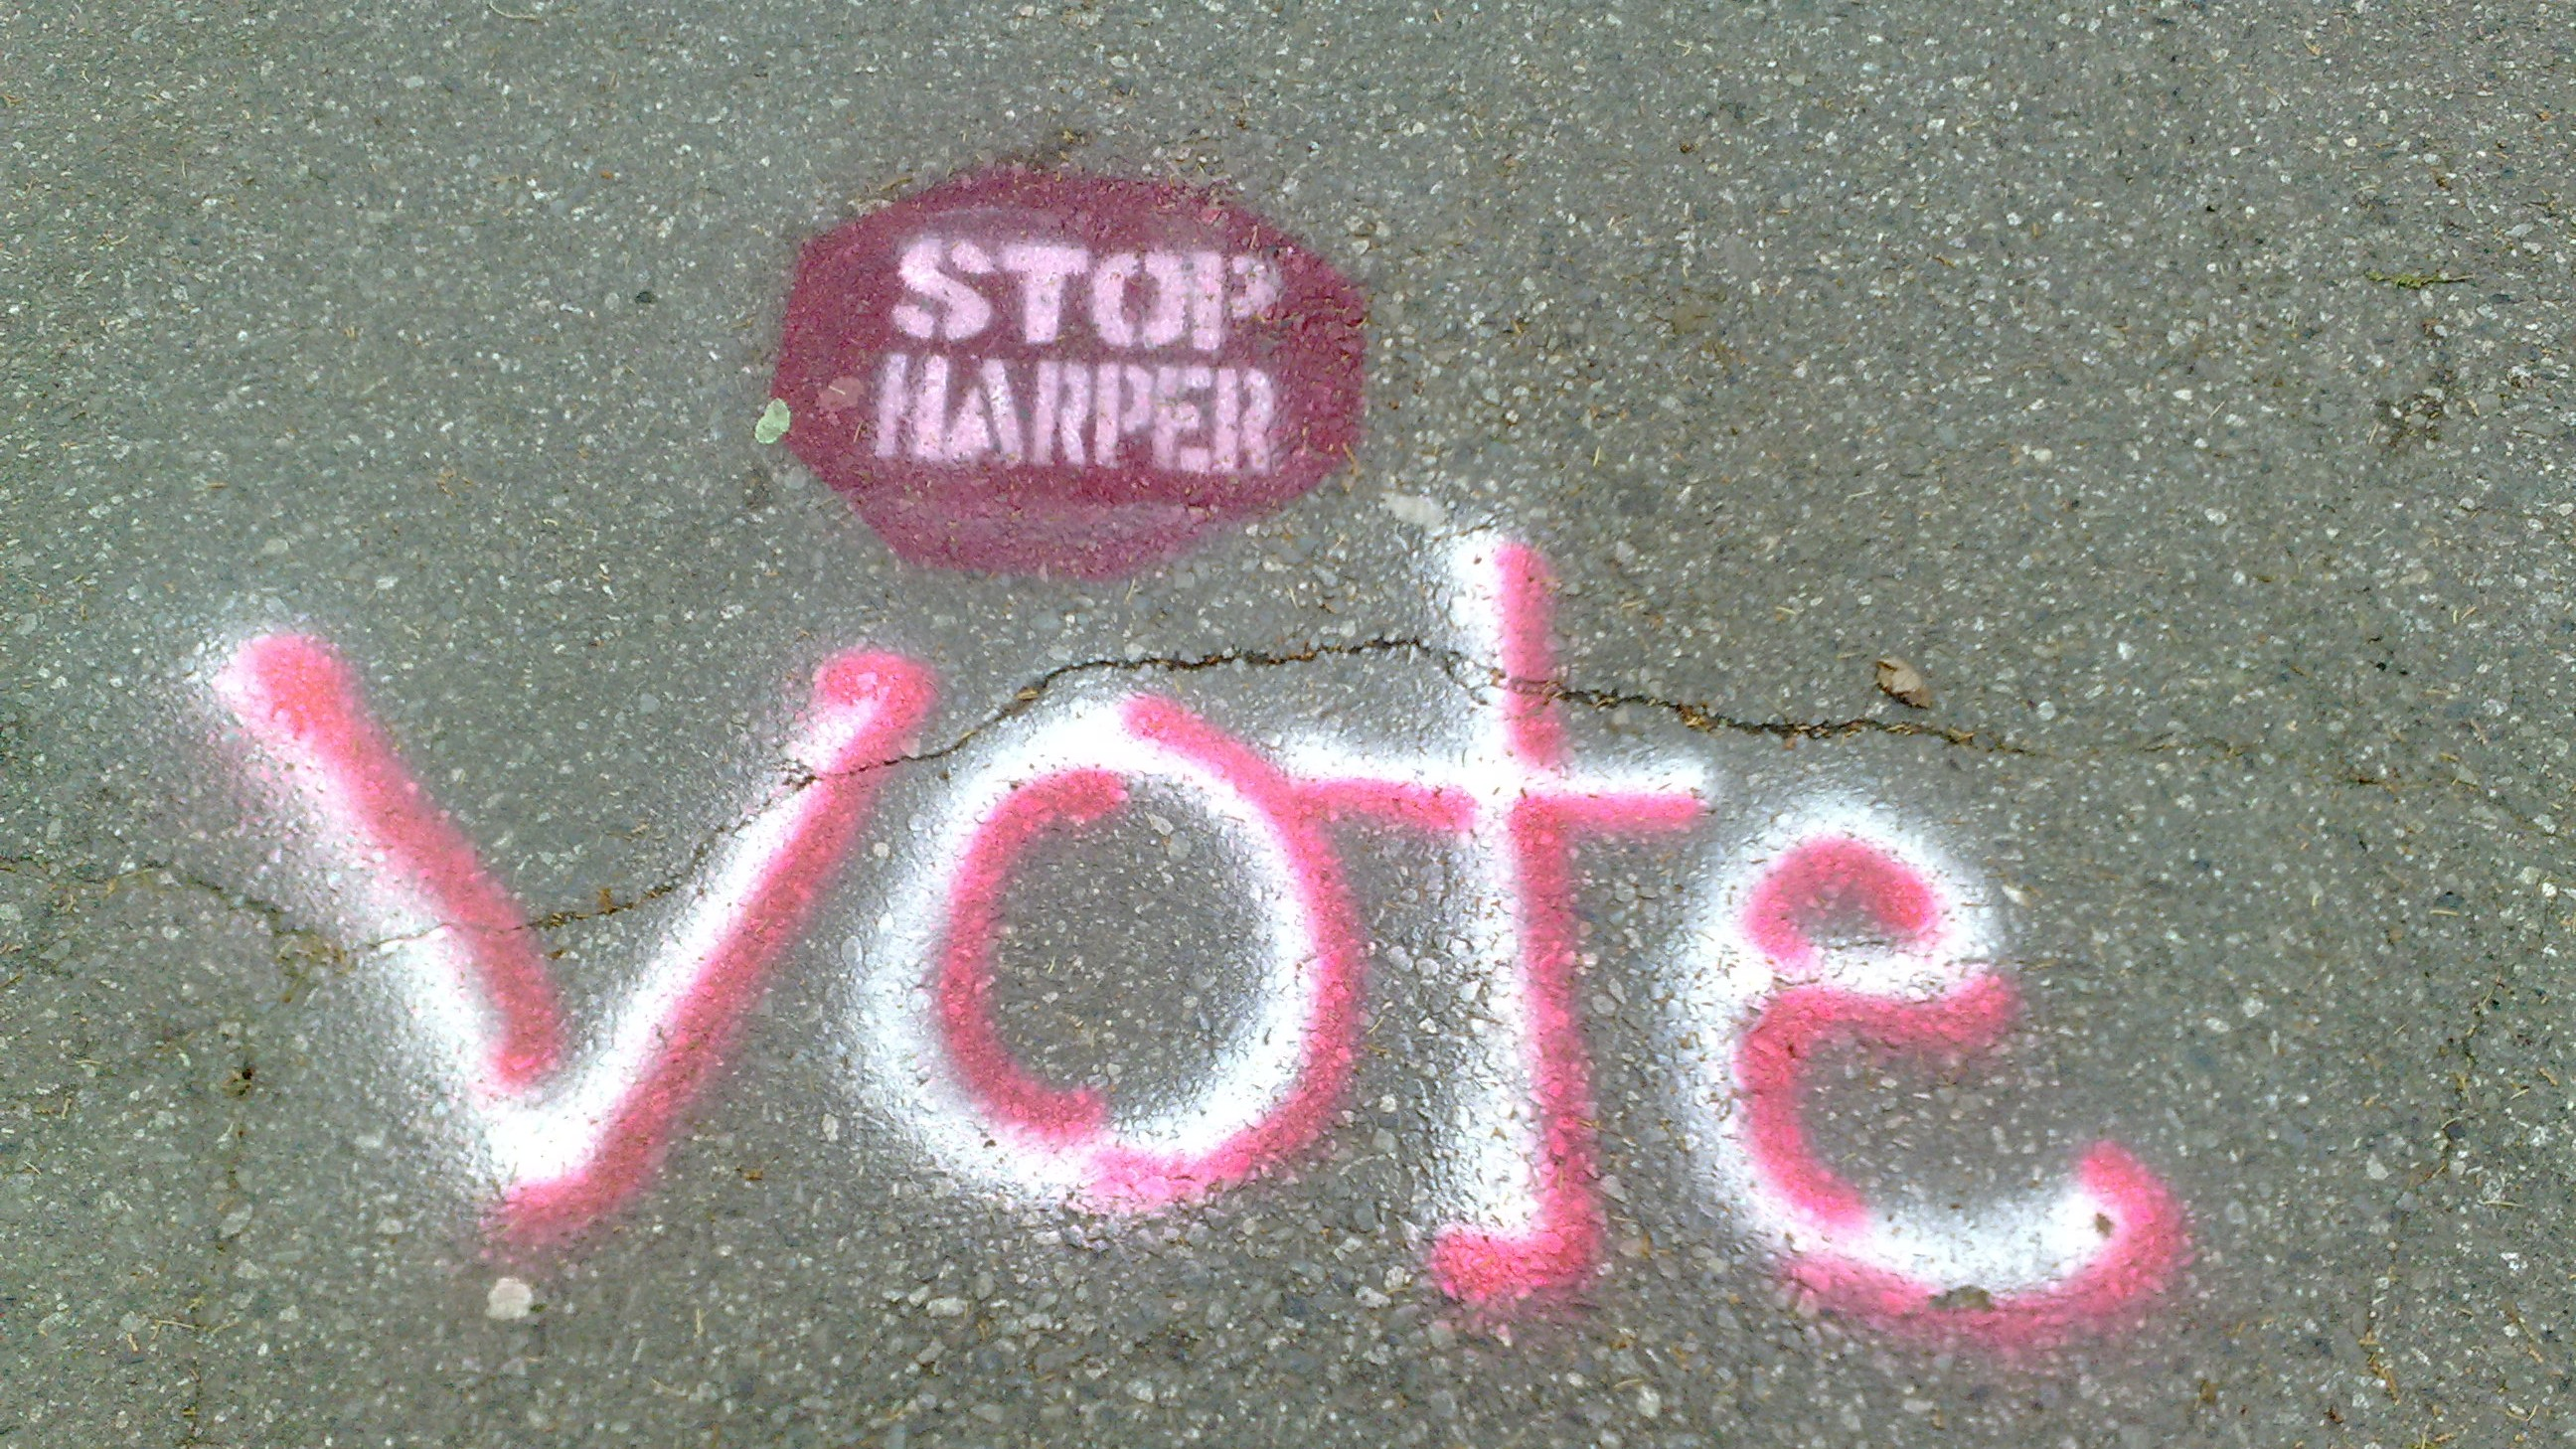 'Sluts Against Harper' Is Back on Instagram After Being Banned